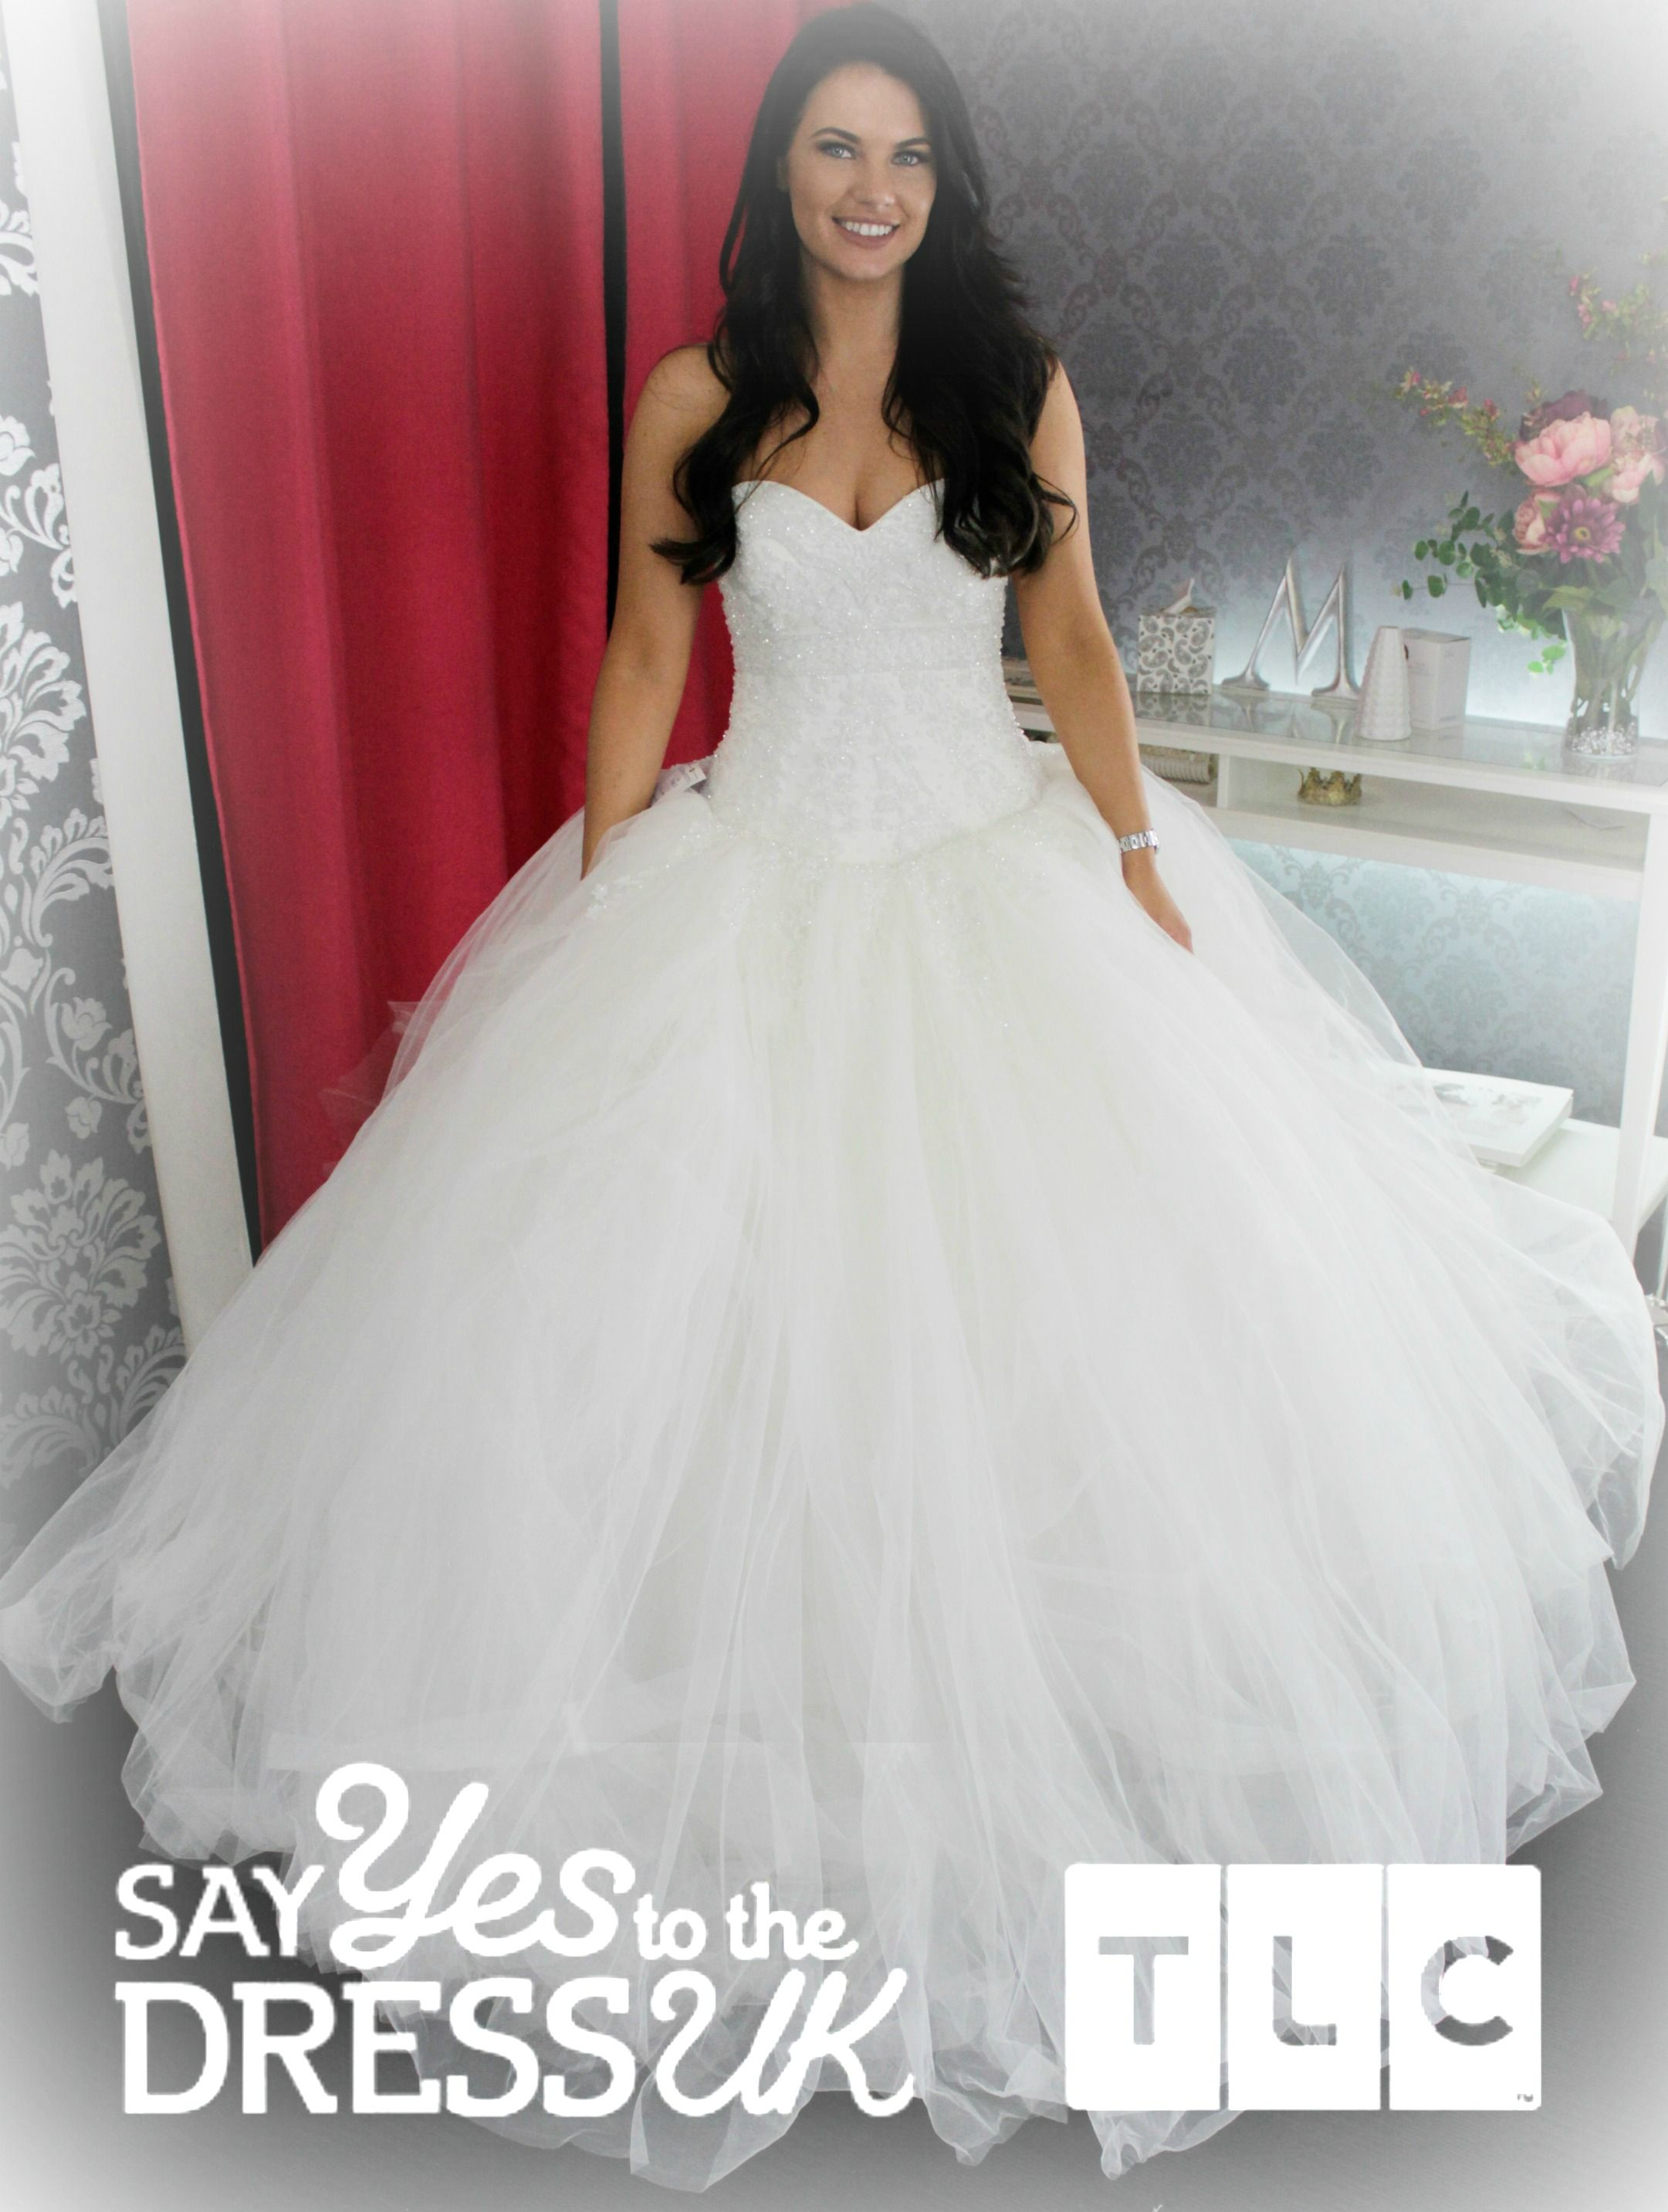 What a princess! \'Like\' if you\'d say Yes to this dress! Say Yes To ...